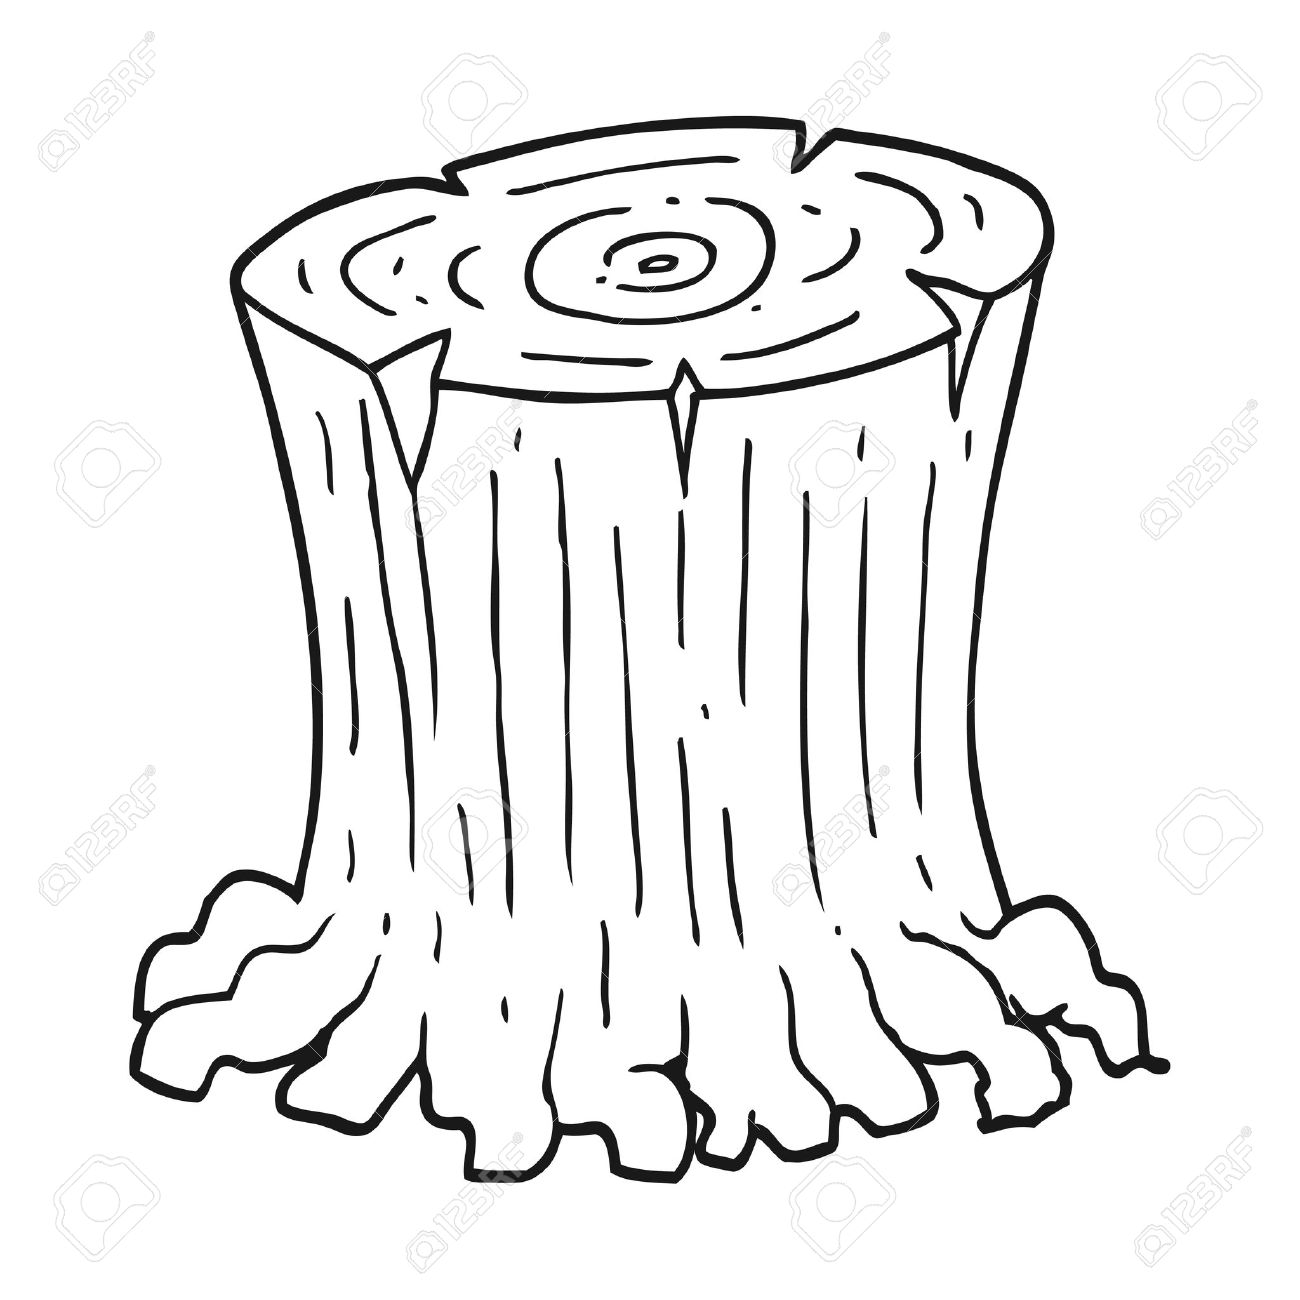 Tree Stump Drawing At Getdrawings